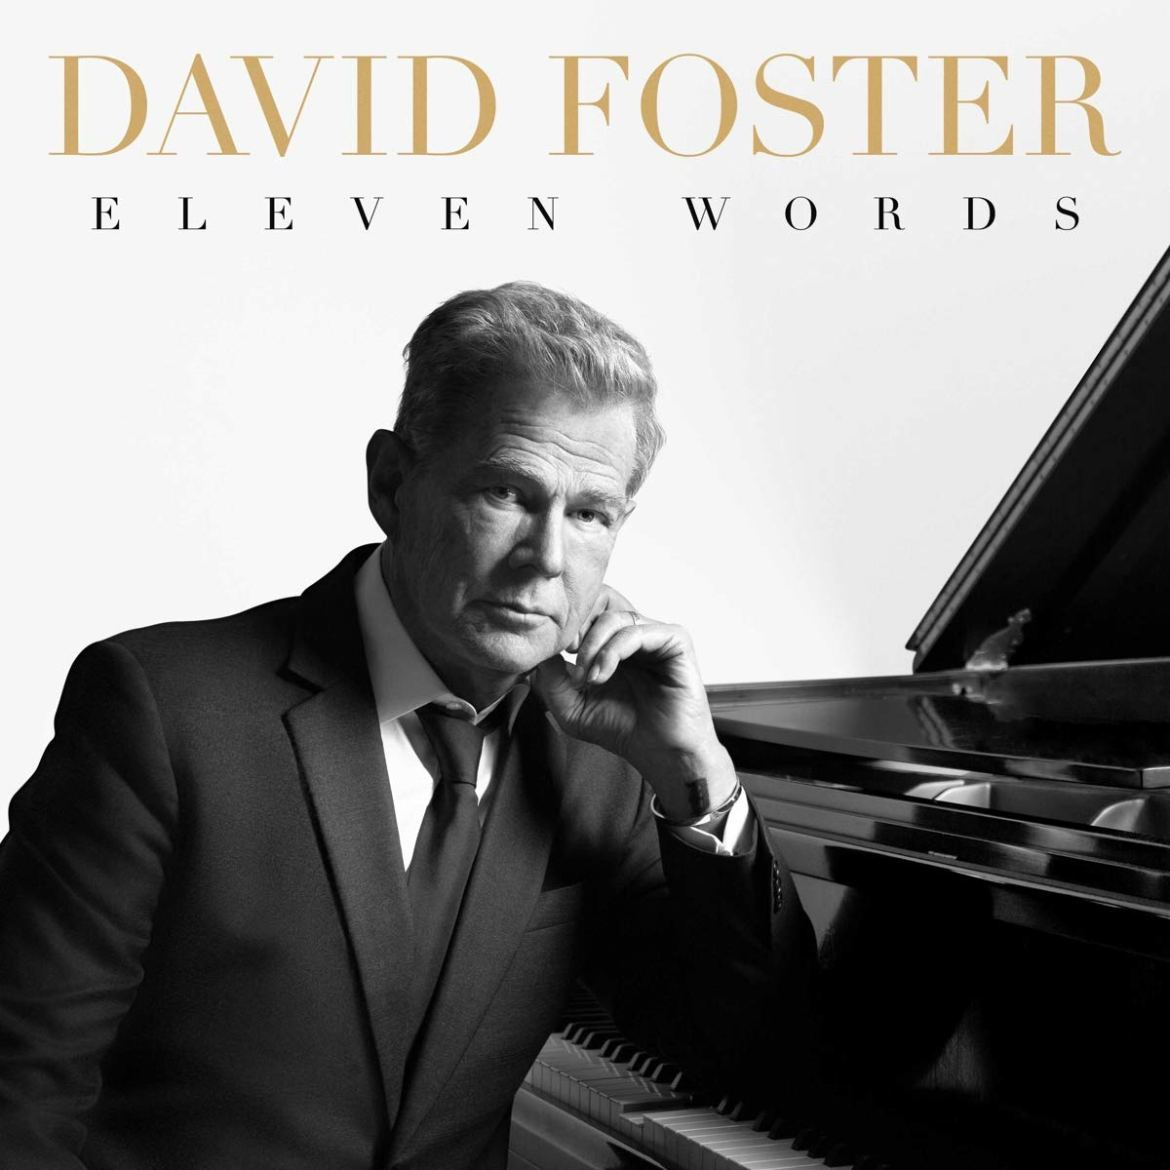 David Foster Eleven Words Piano Album review by Chester Tan